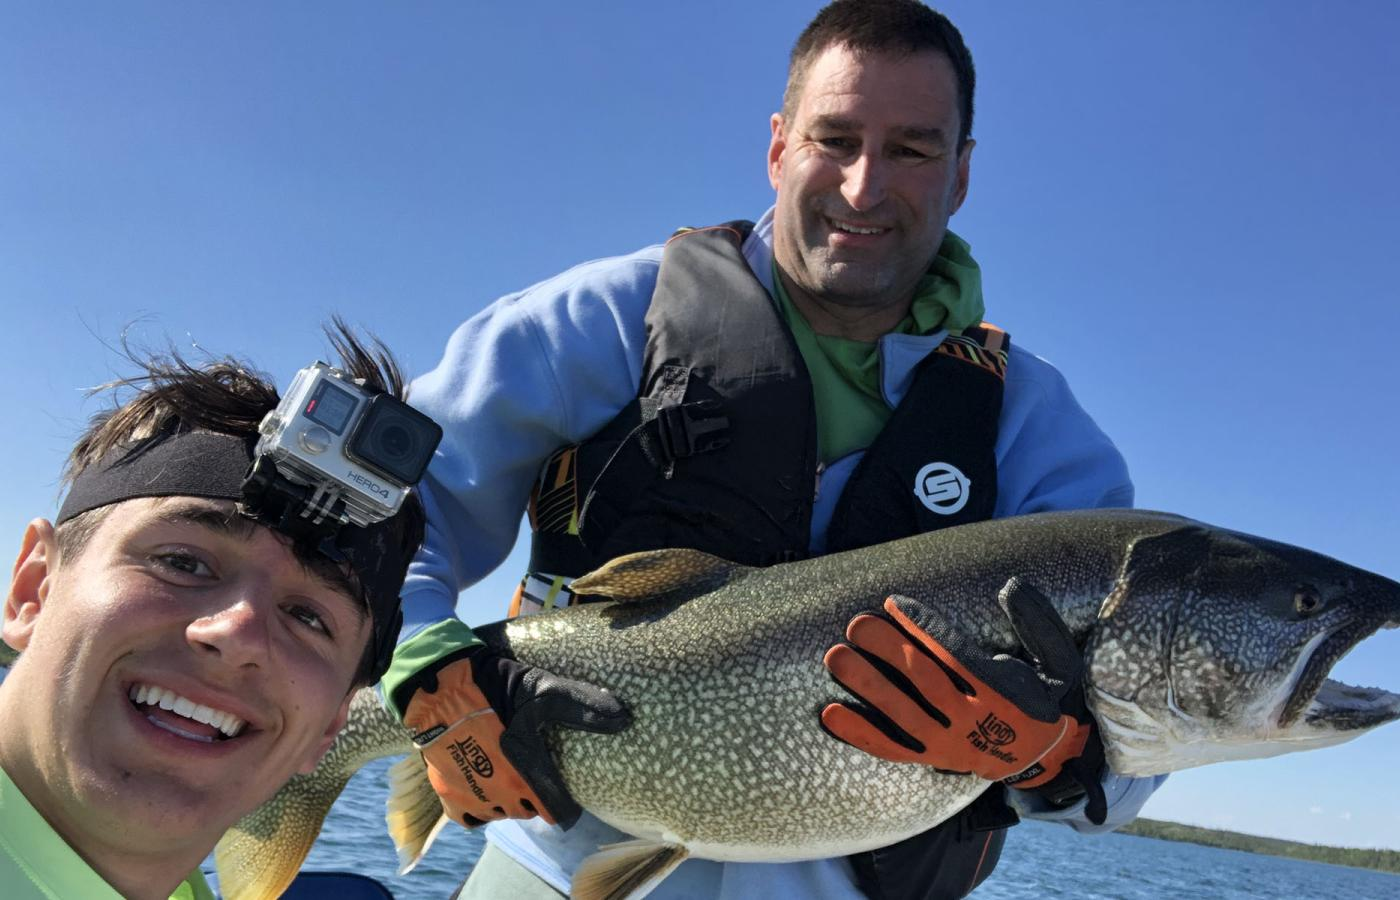 A man and his son pose for a selfie after catching a fish in the NWT